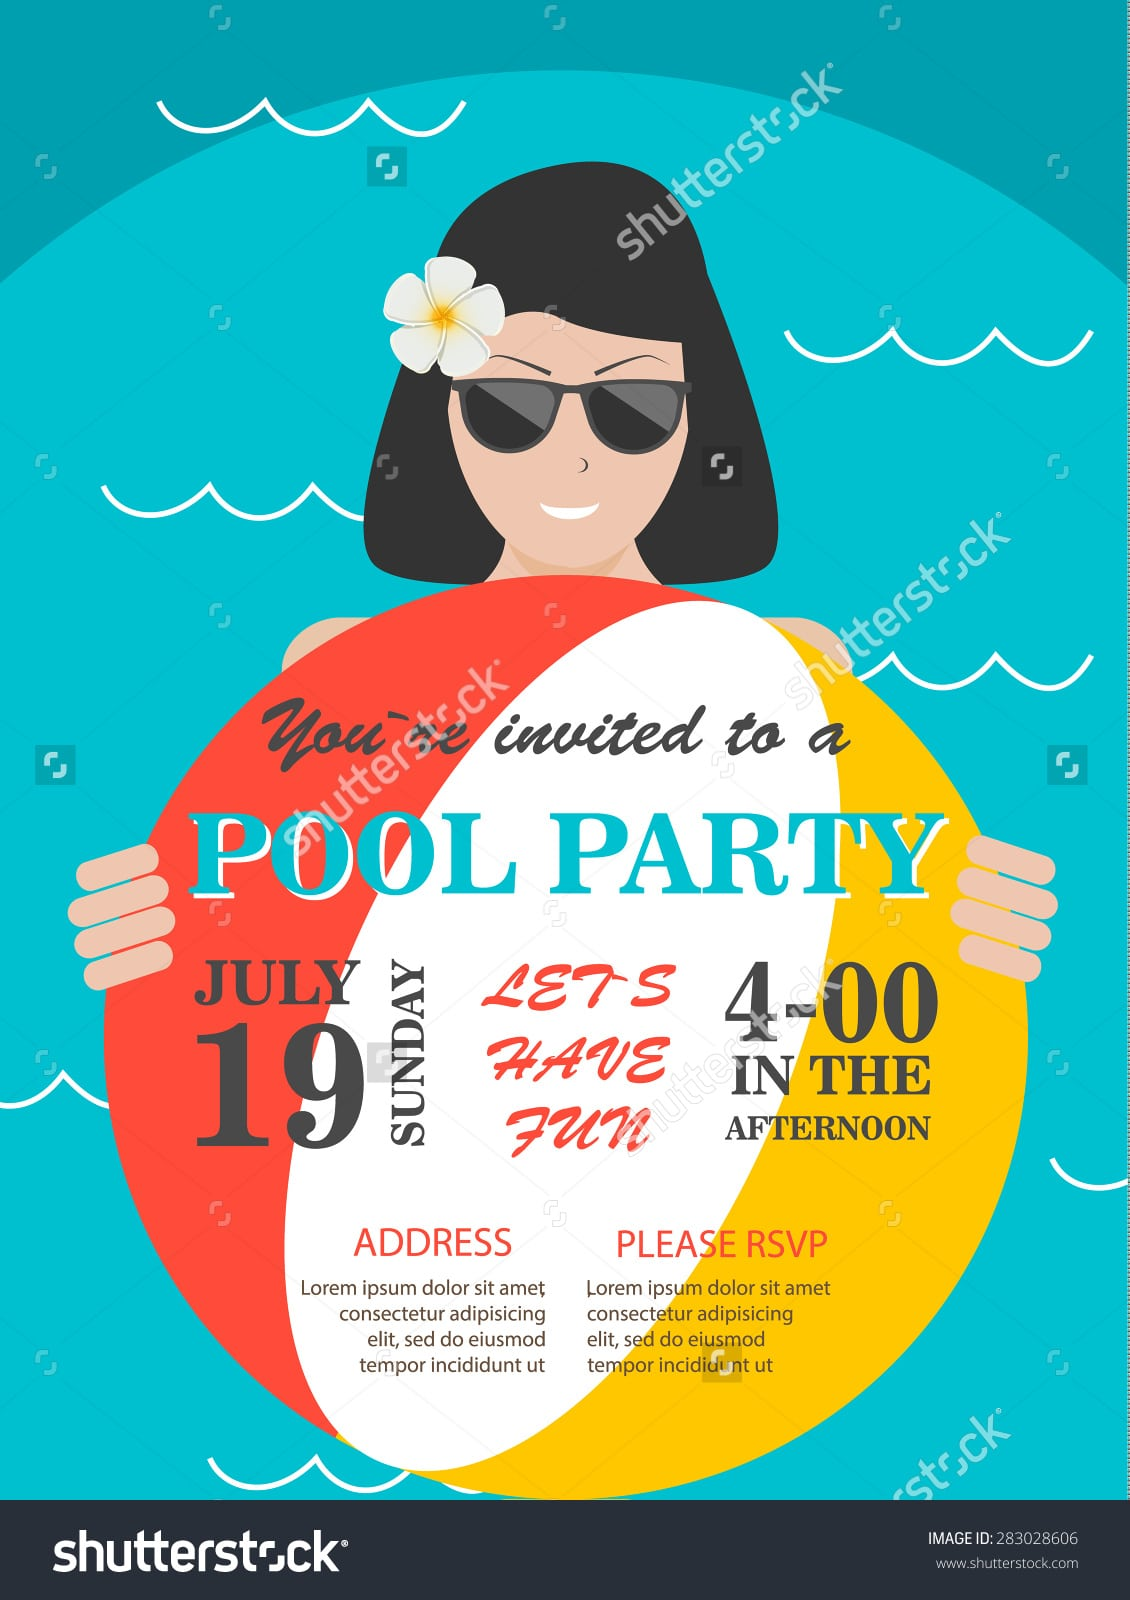 Pool Party Invitation Flyer Smiling Woman Stock Vector 283028606